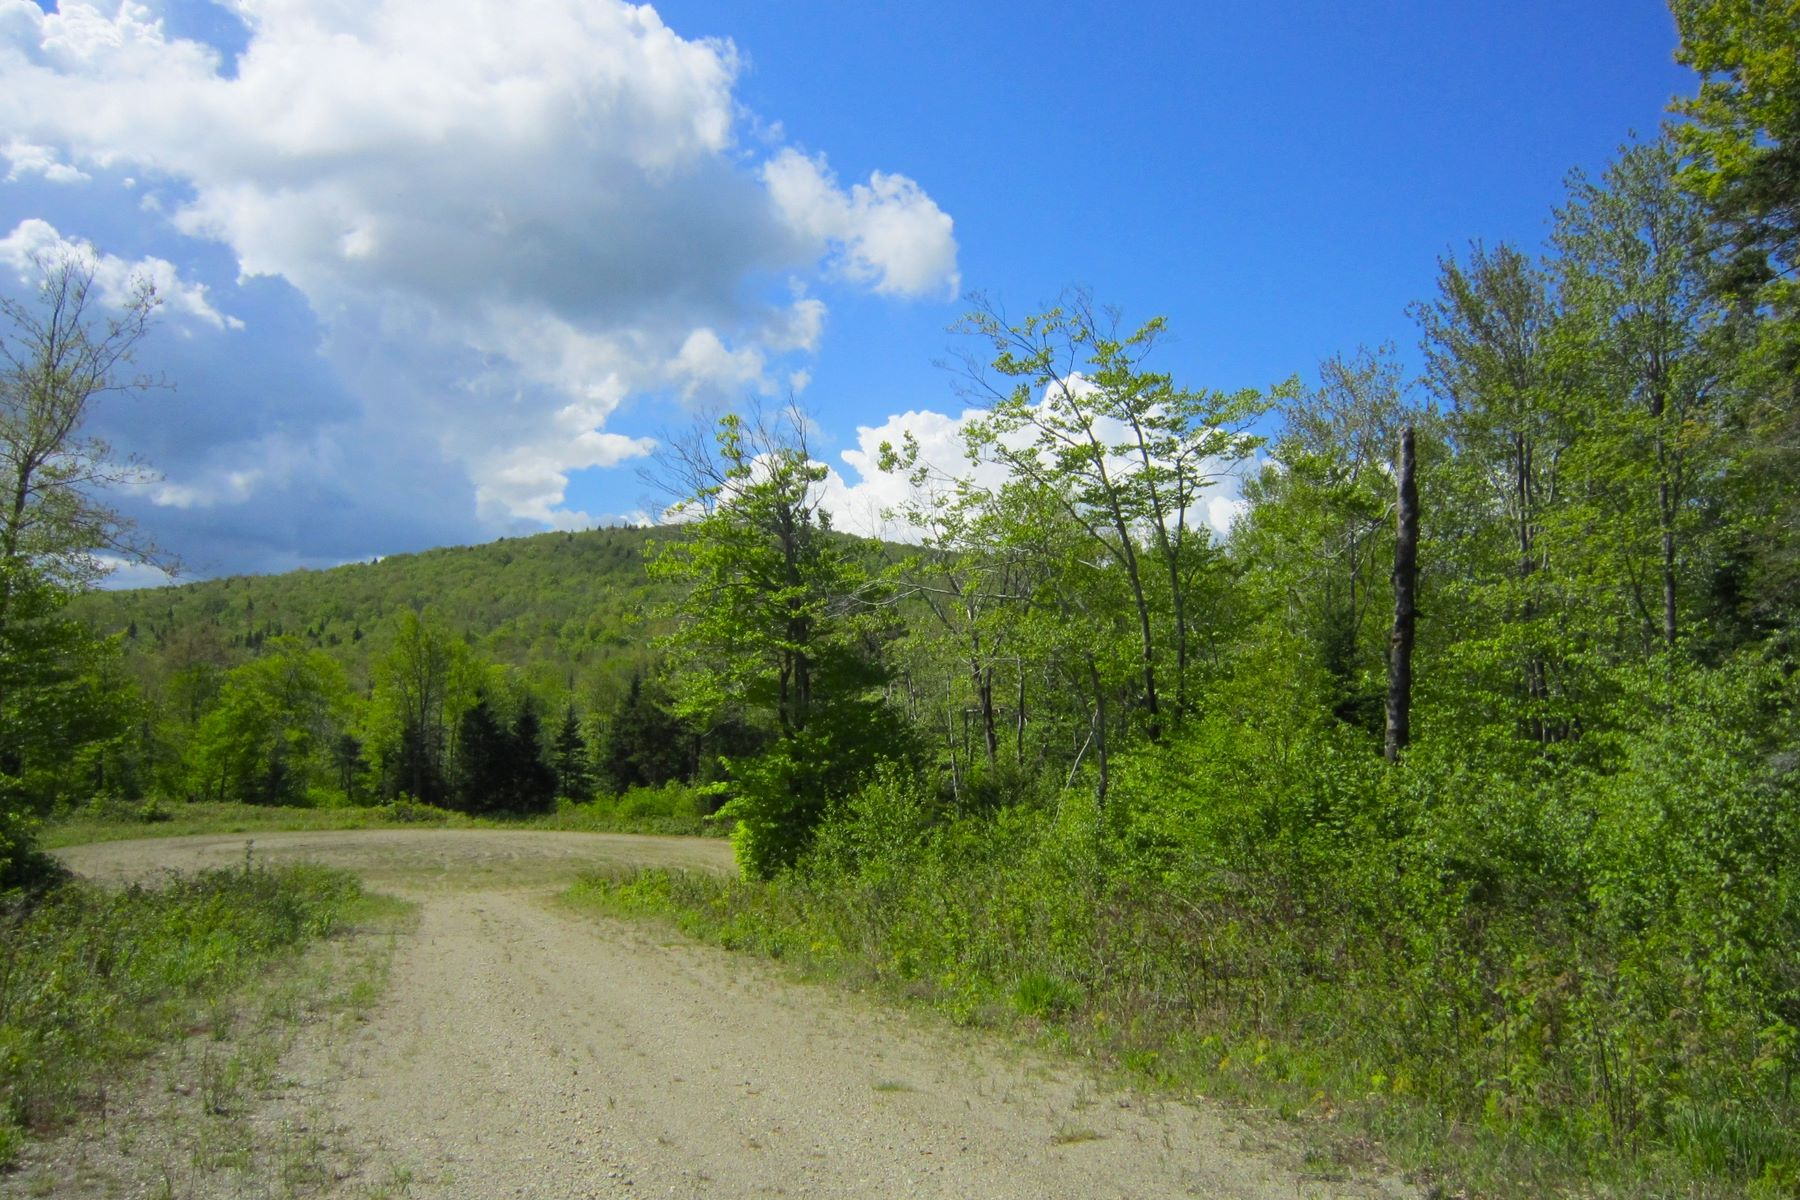 Land for Sale at Lot 3 Candeleros Court Ludlow, Vermont 05149 United States